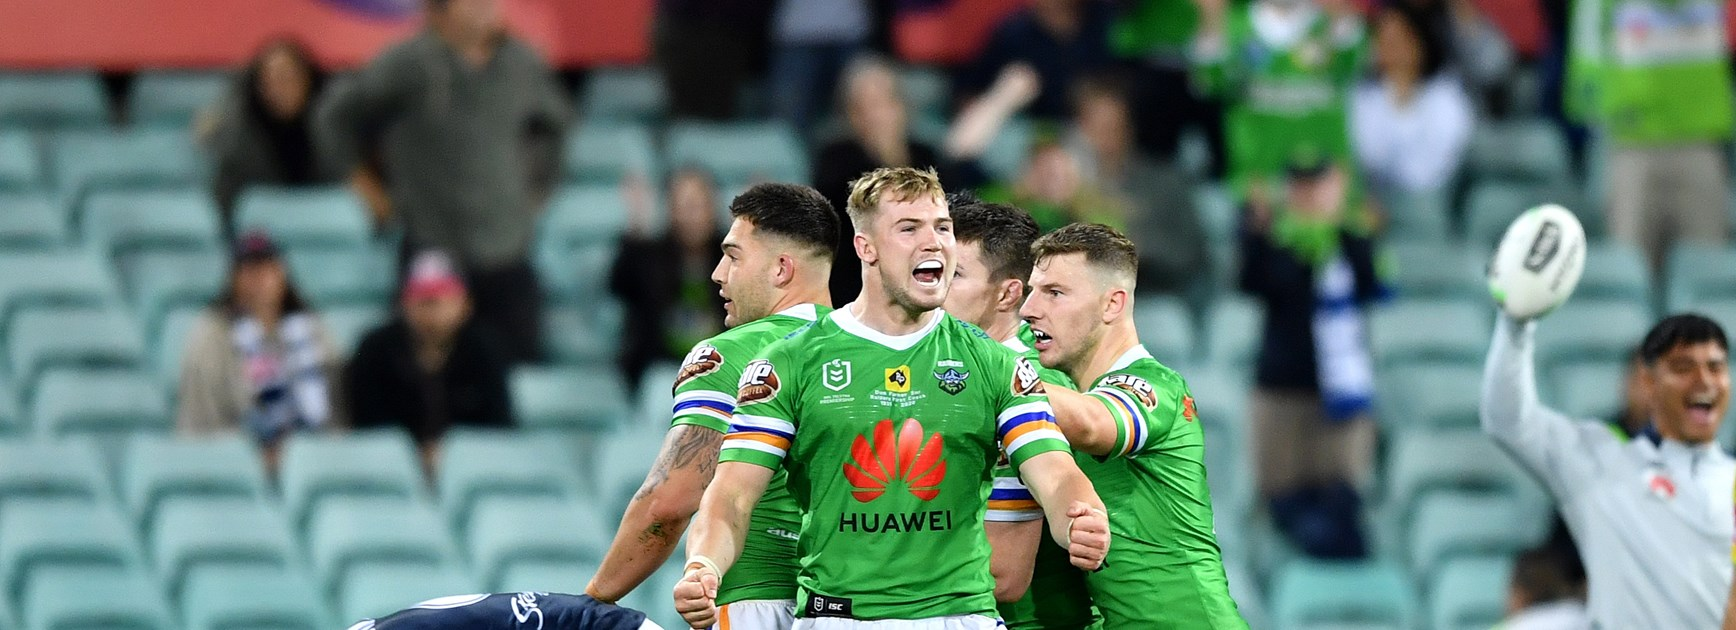 NRL Team of the Week: Jack, Josh and Joe spearhead a Raider rampage